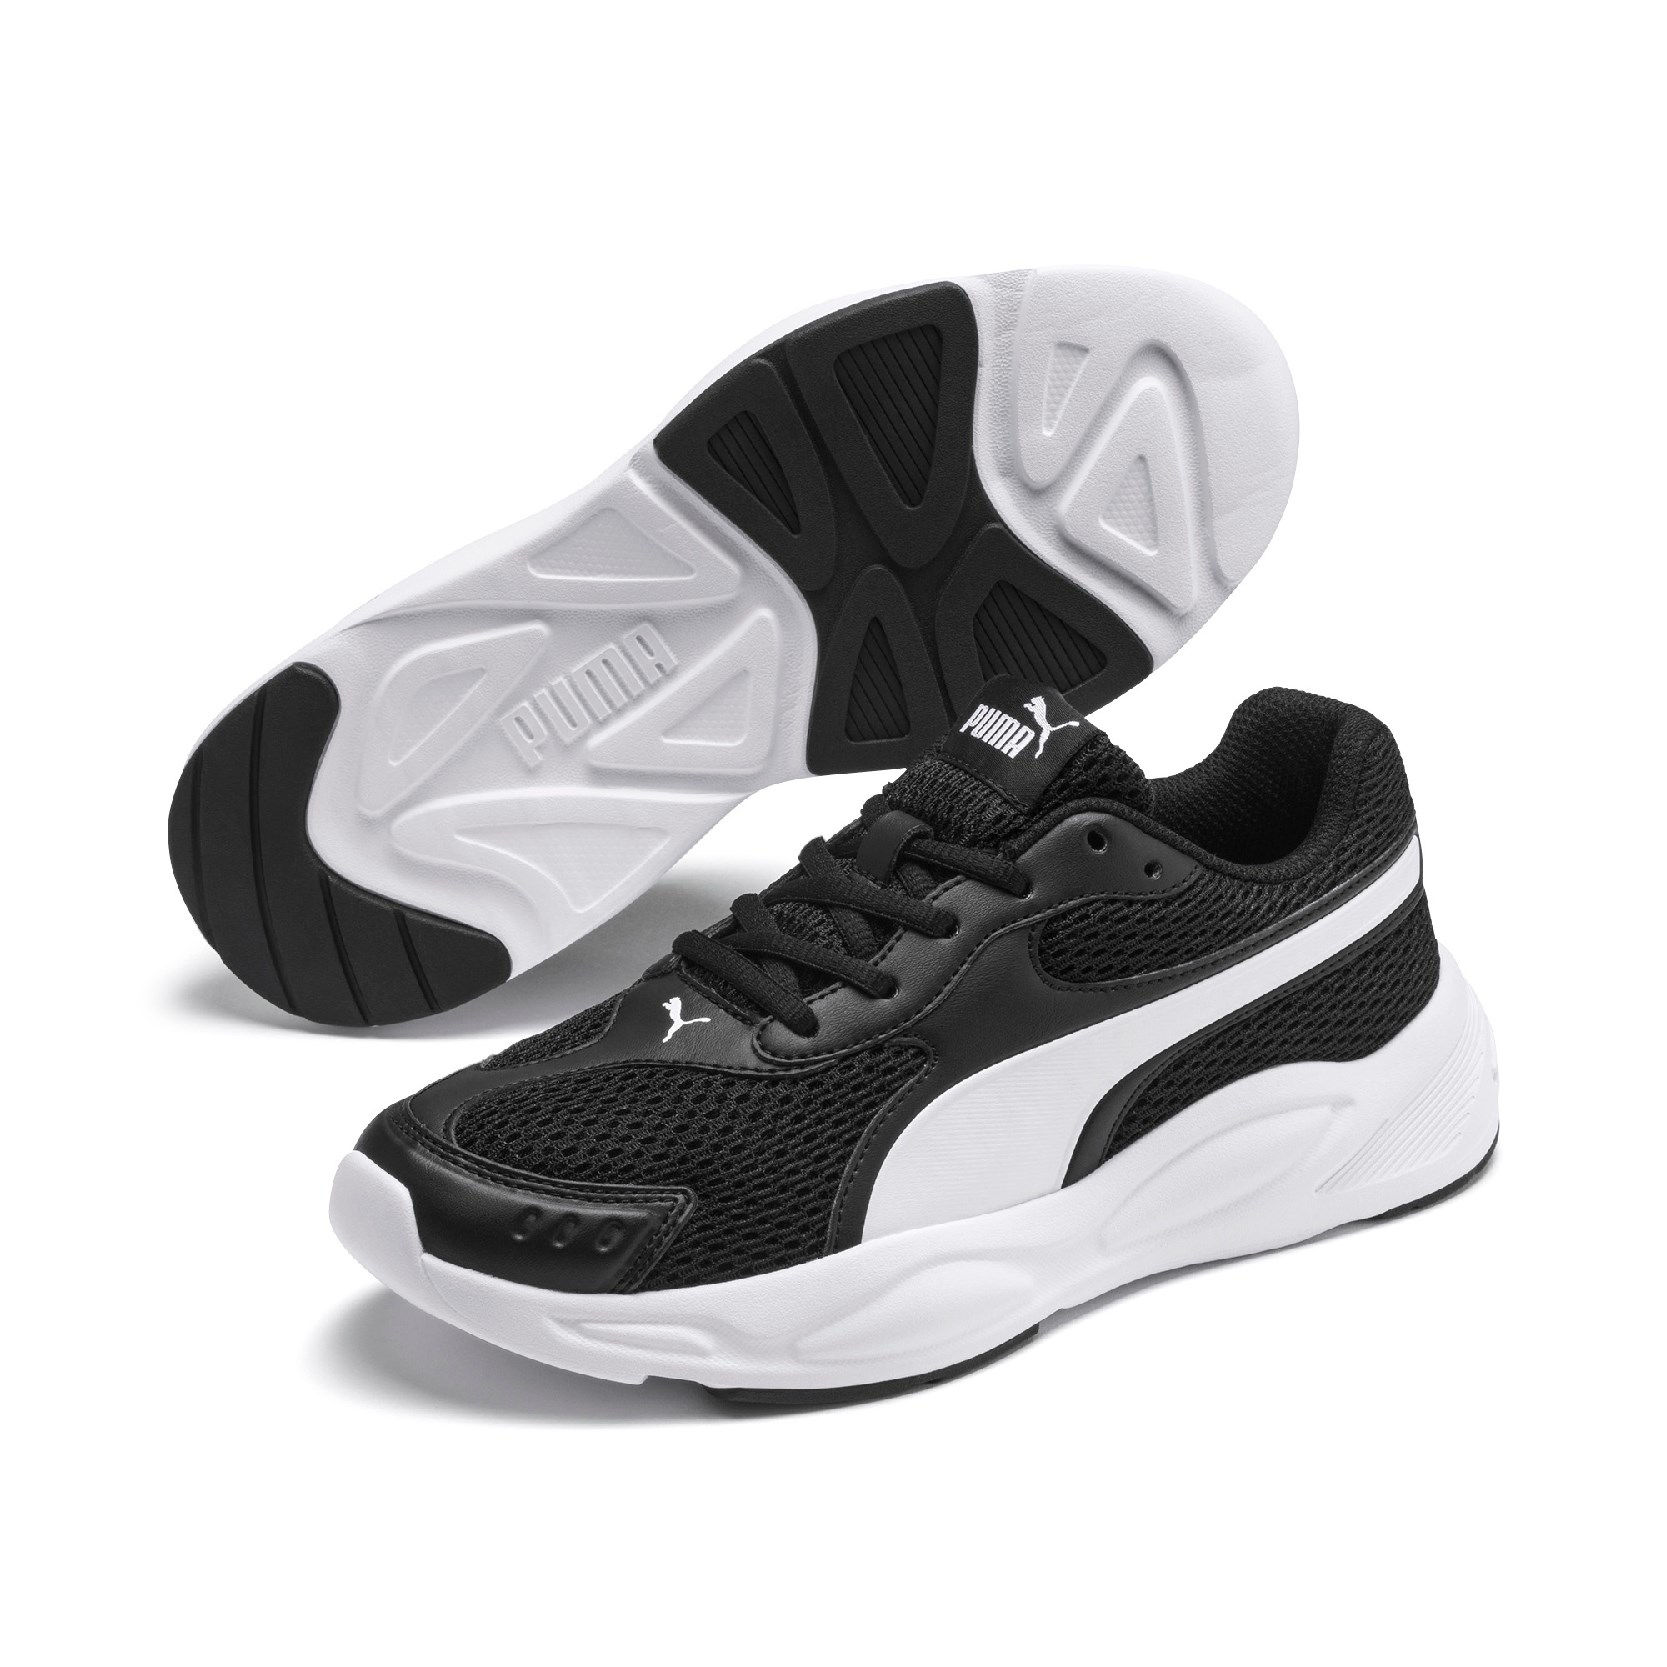 Immagine di PUMA - SCARPA 90S RUNNER BLACK-WHITE